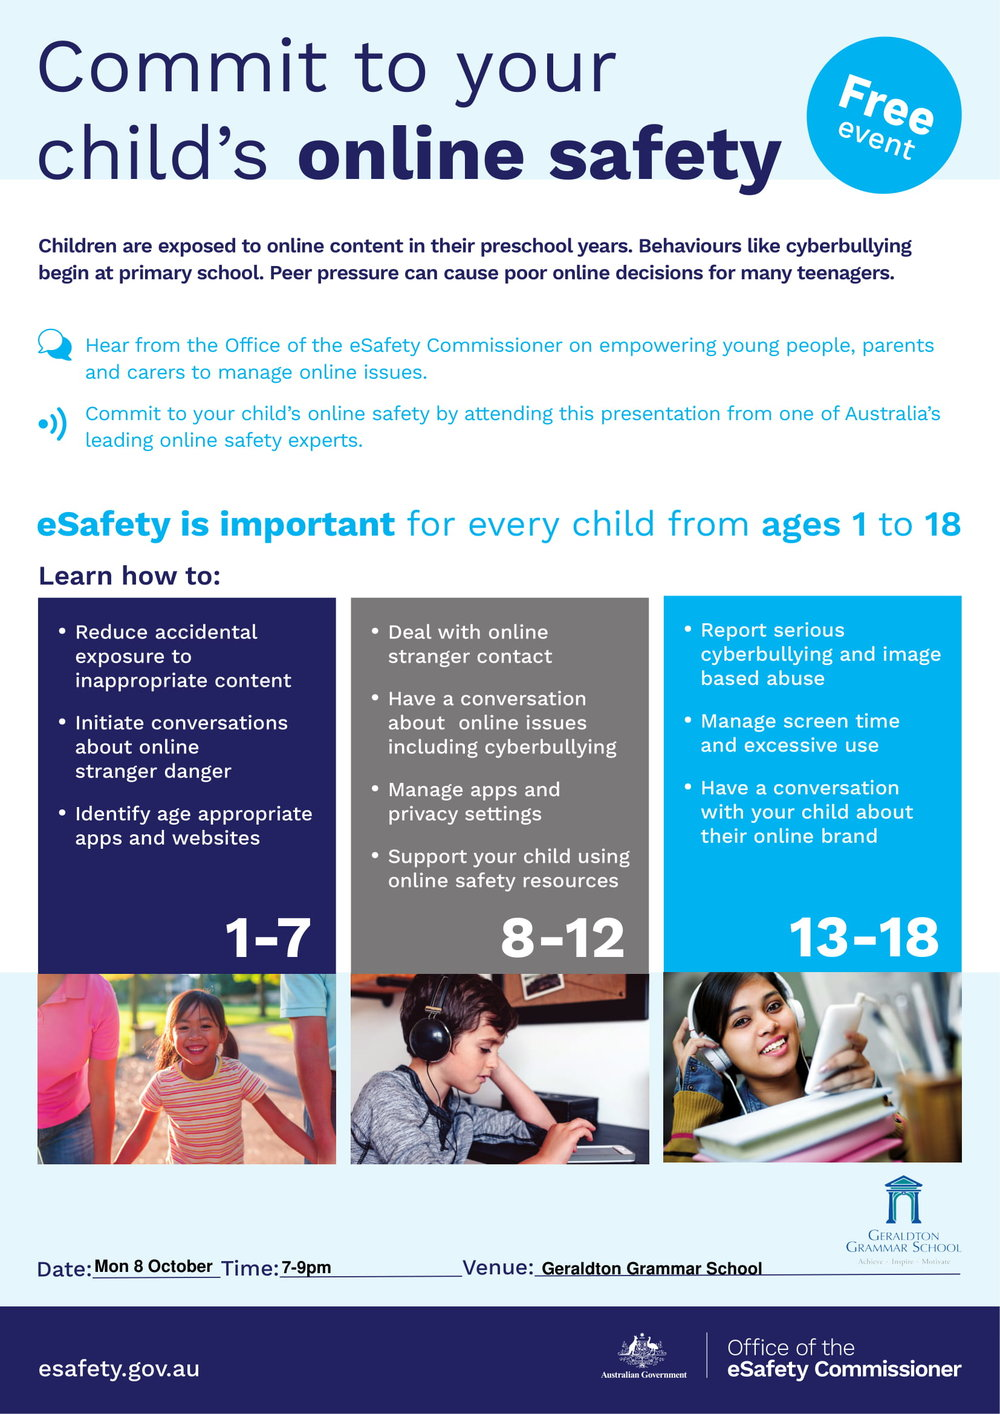 Parent_Carer_Community_Presentation_Poster-1.jpg